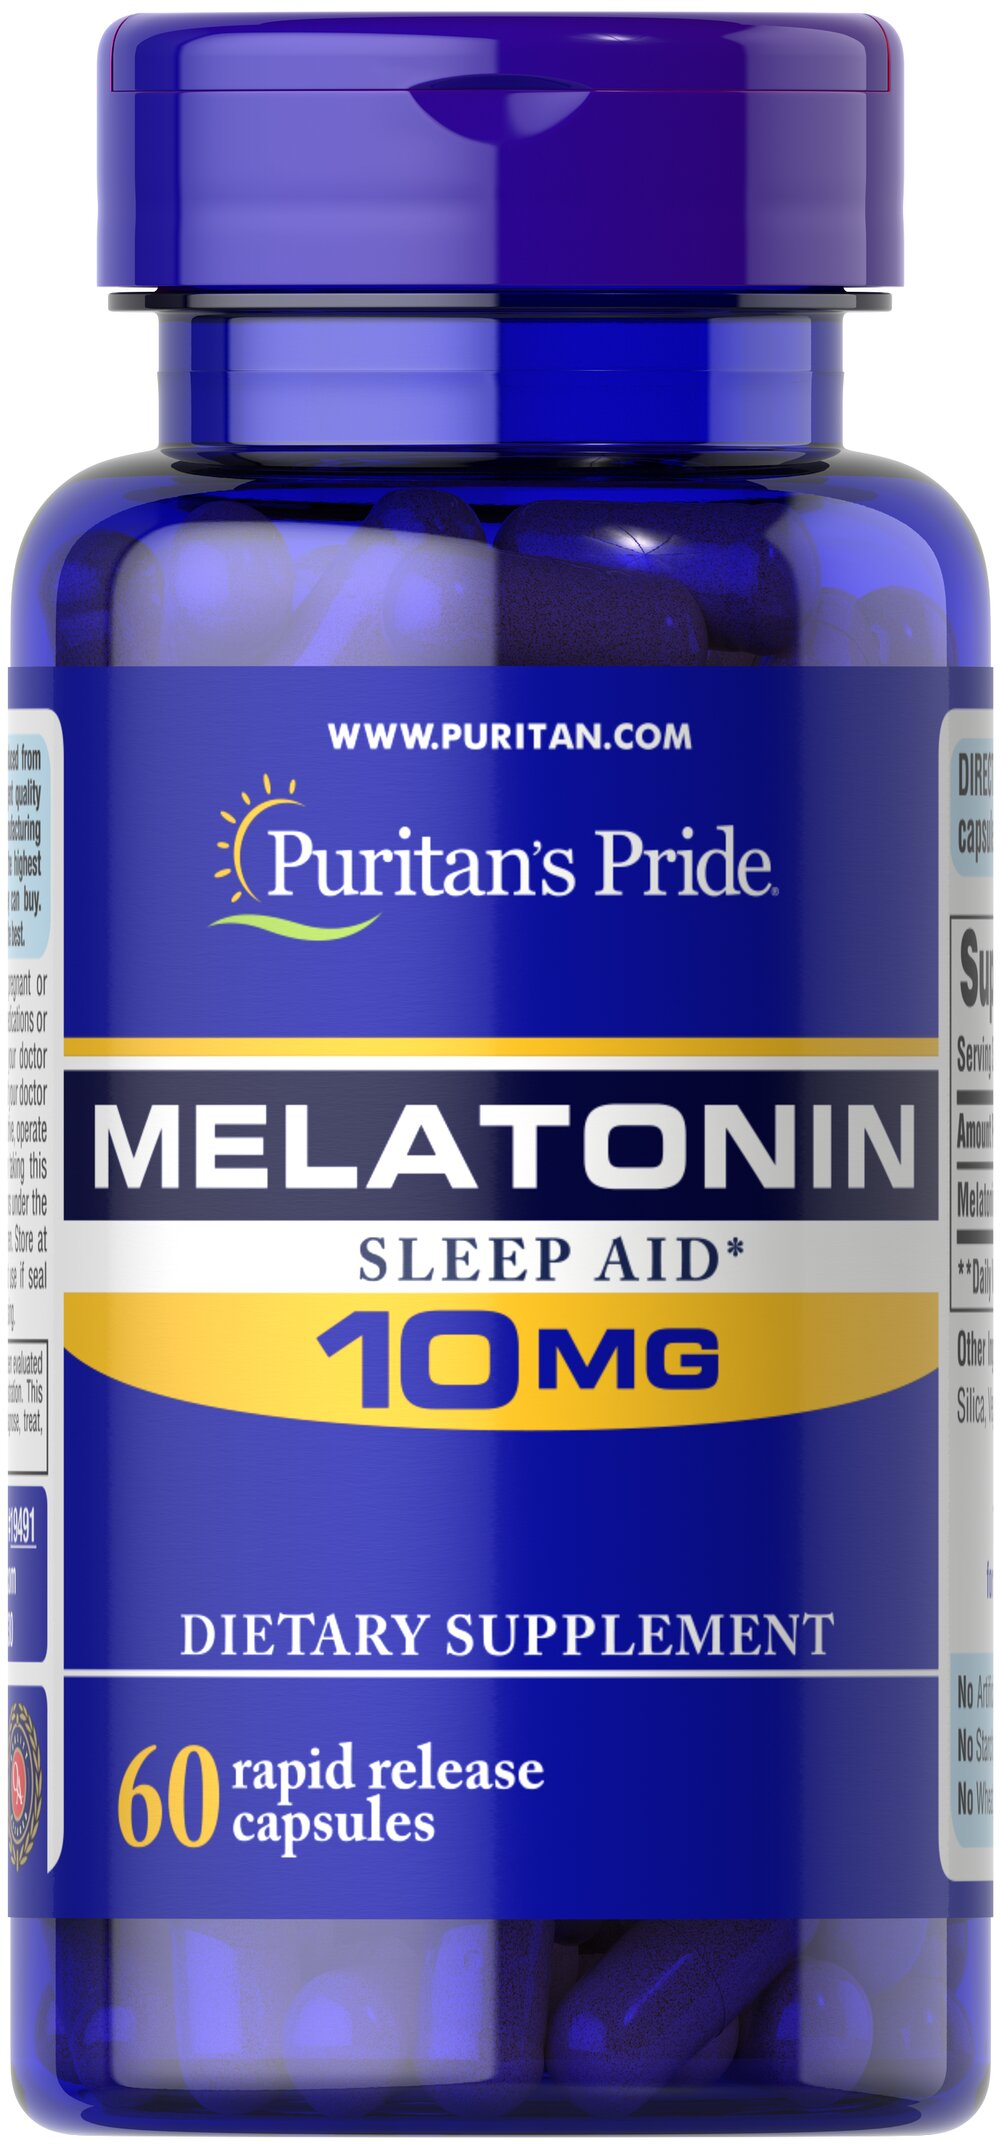 Melatonin 10 mg <p>Sometimes it's hard to unwind after a long day. That's when it's time for Melatonin, a hormone naturally produced in the body that is closely involved in the natural sleep cycle.** It's a terrific choice if you experience occasional sleeplessness or jet lag, or if you want to improve your quality of rest.**</p> 60 Capsules 10 mg $3.99